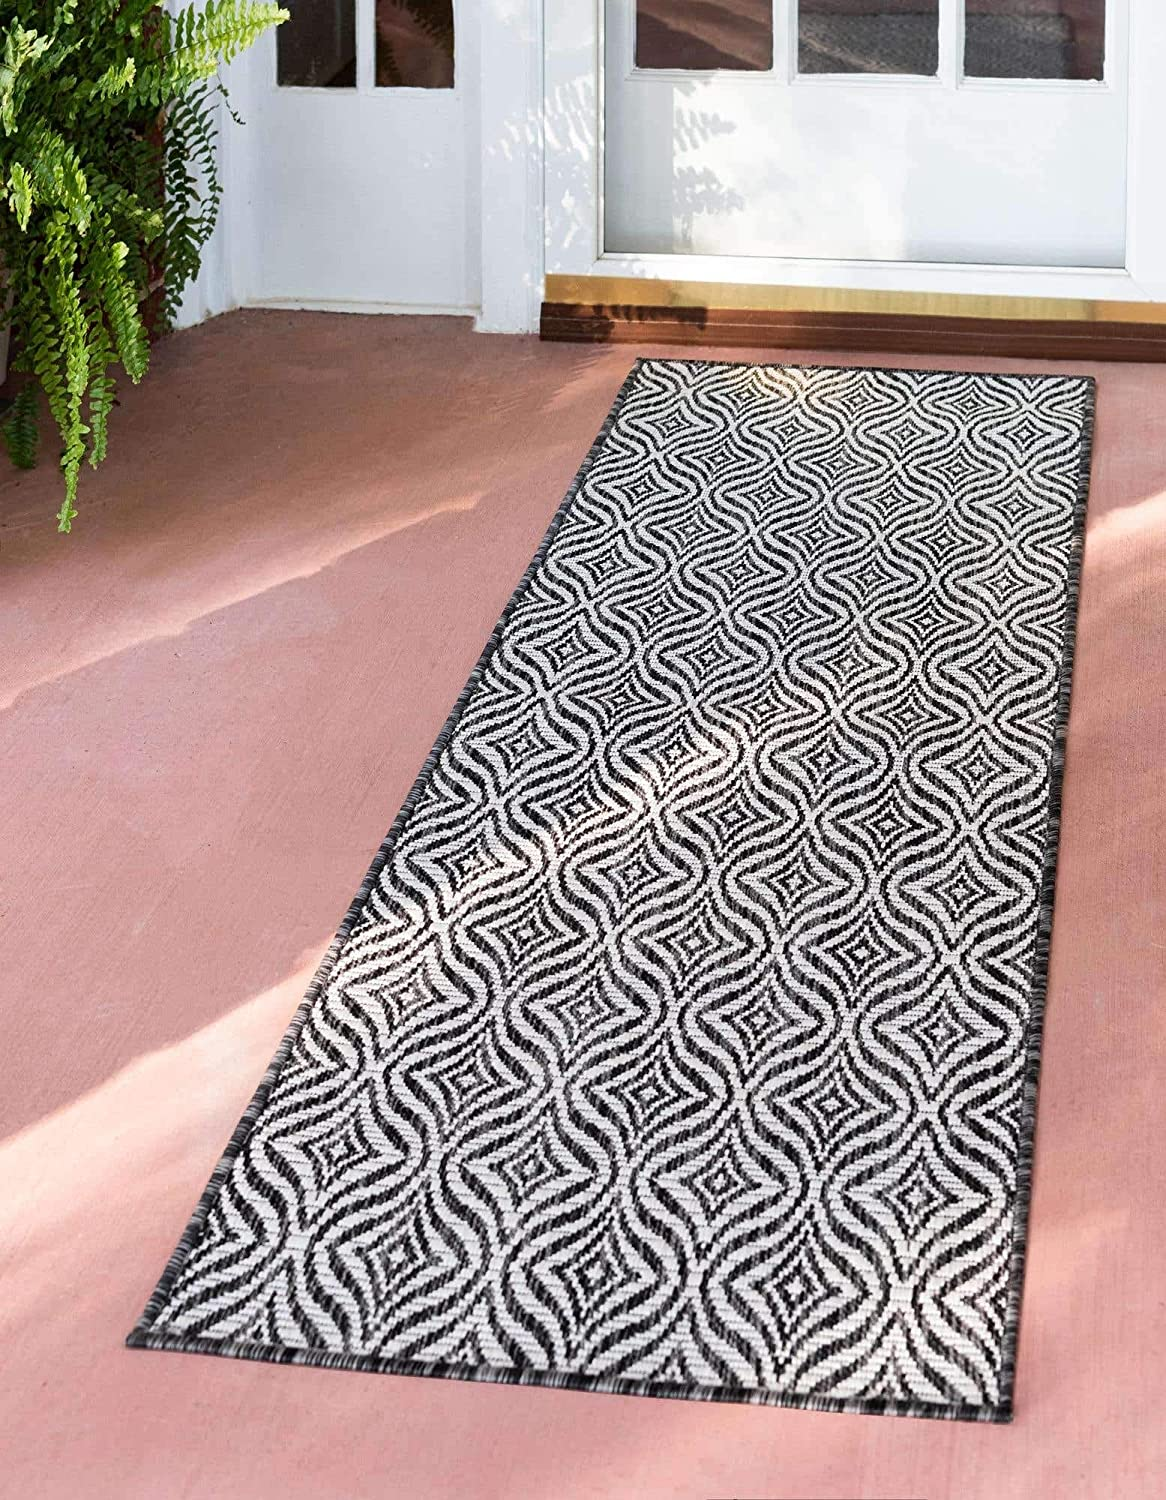 Unique Loom Trellis Collection Modern Geometric Transitional Indoor and Outdoor Flatweave Rug_OTR015, 2 x 6 Feet, Charcoal/Ivory